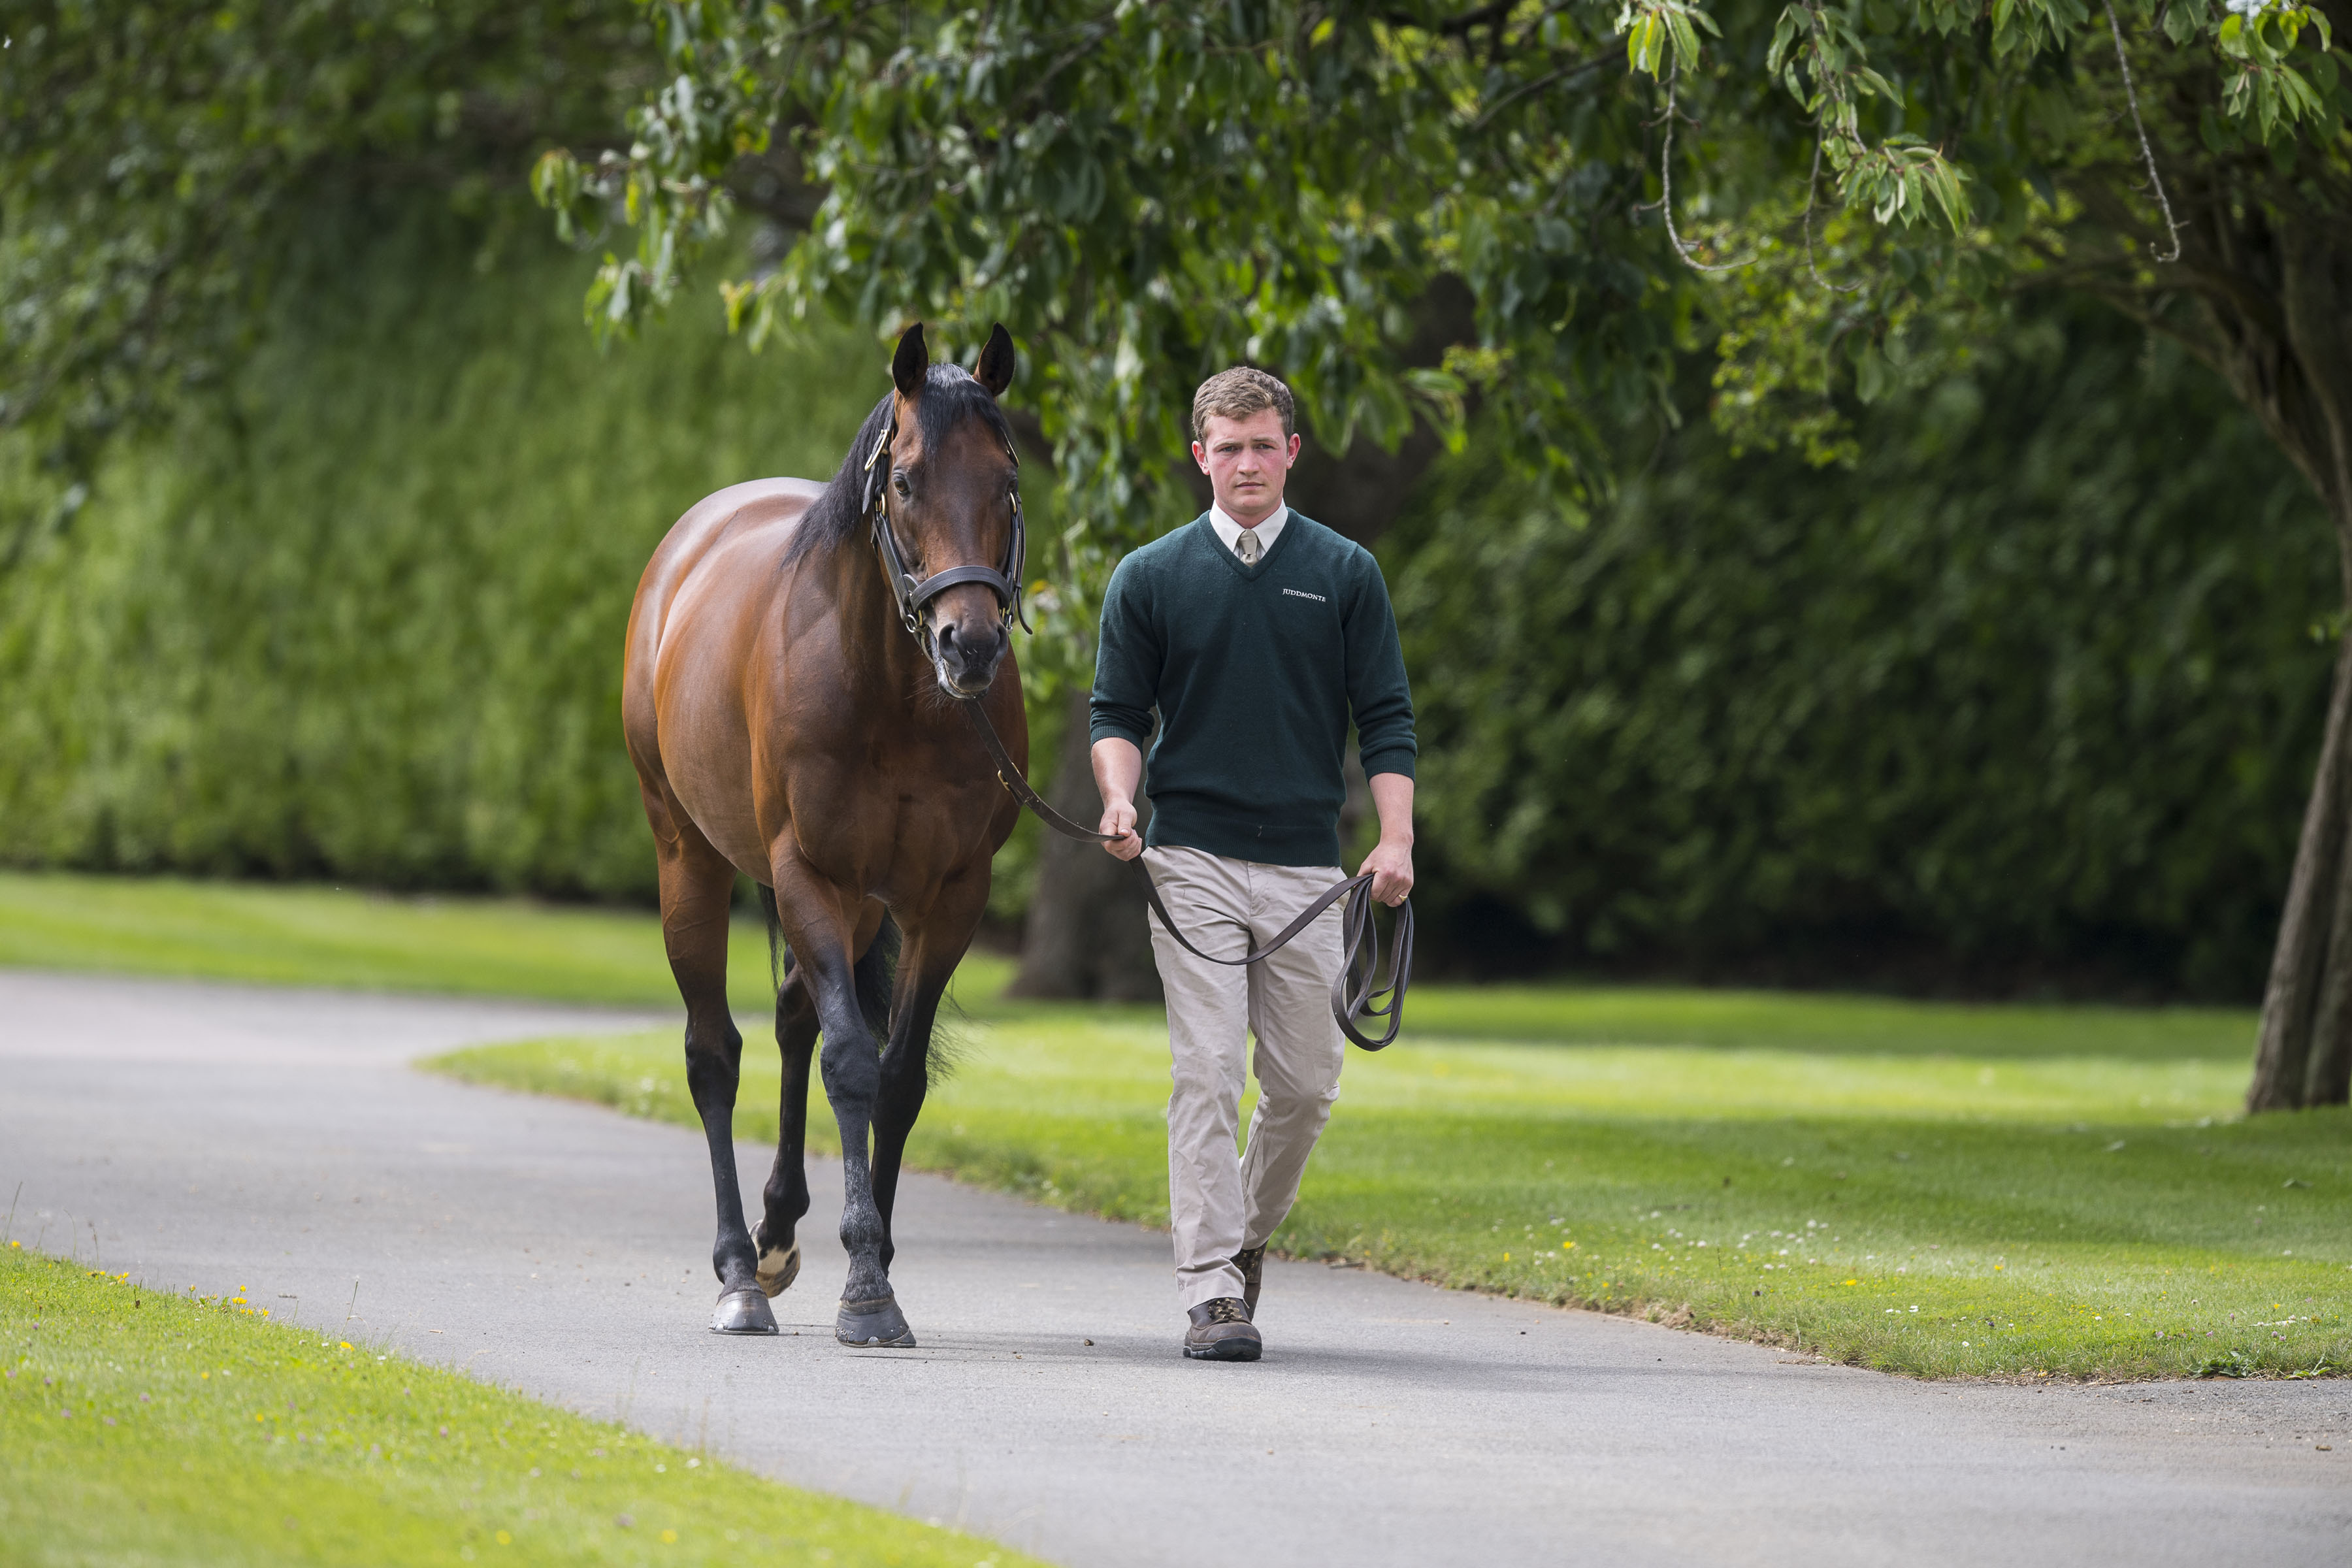 Kingman, one of the most exciting recent additions to Britain's stallion ranks, has two progeny on offer at the sale. Photo: Bronwen Healy/Juddmonte Farms